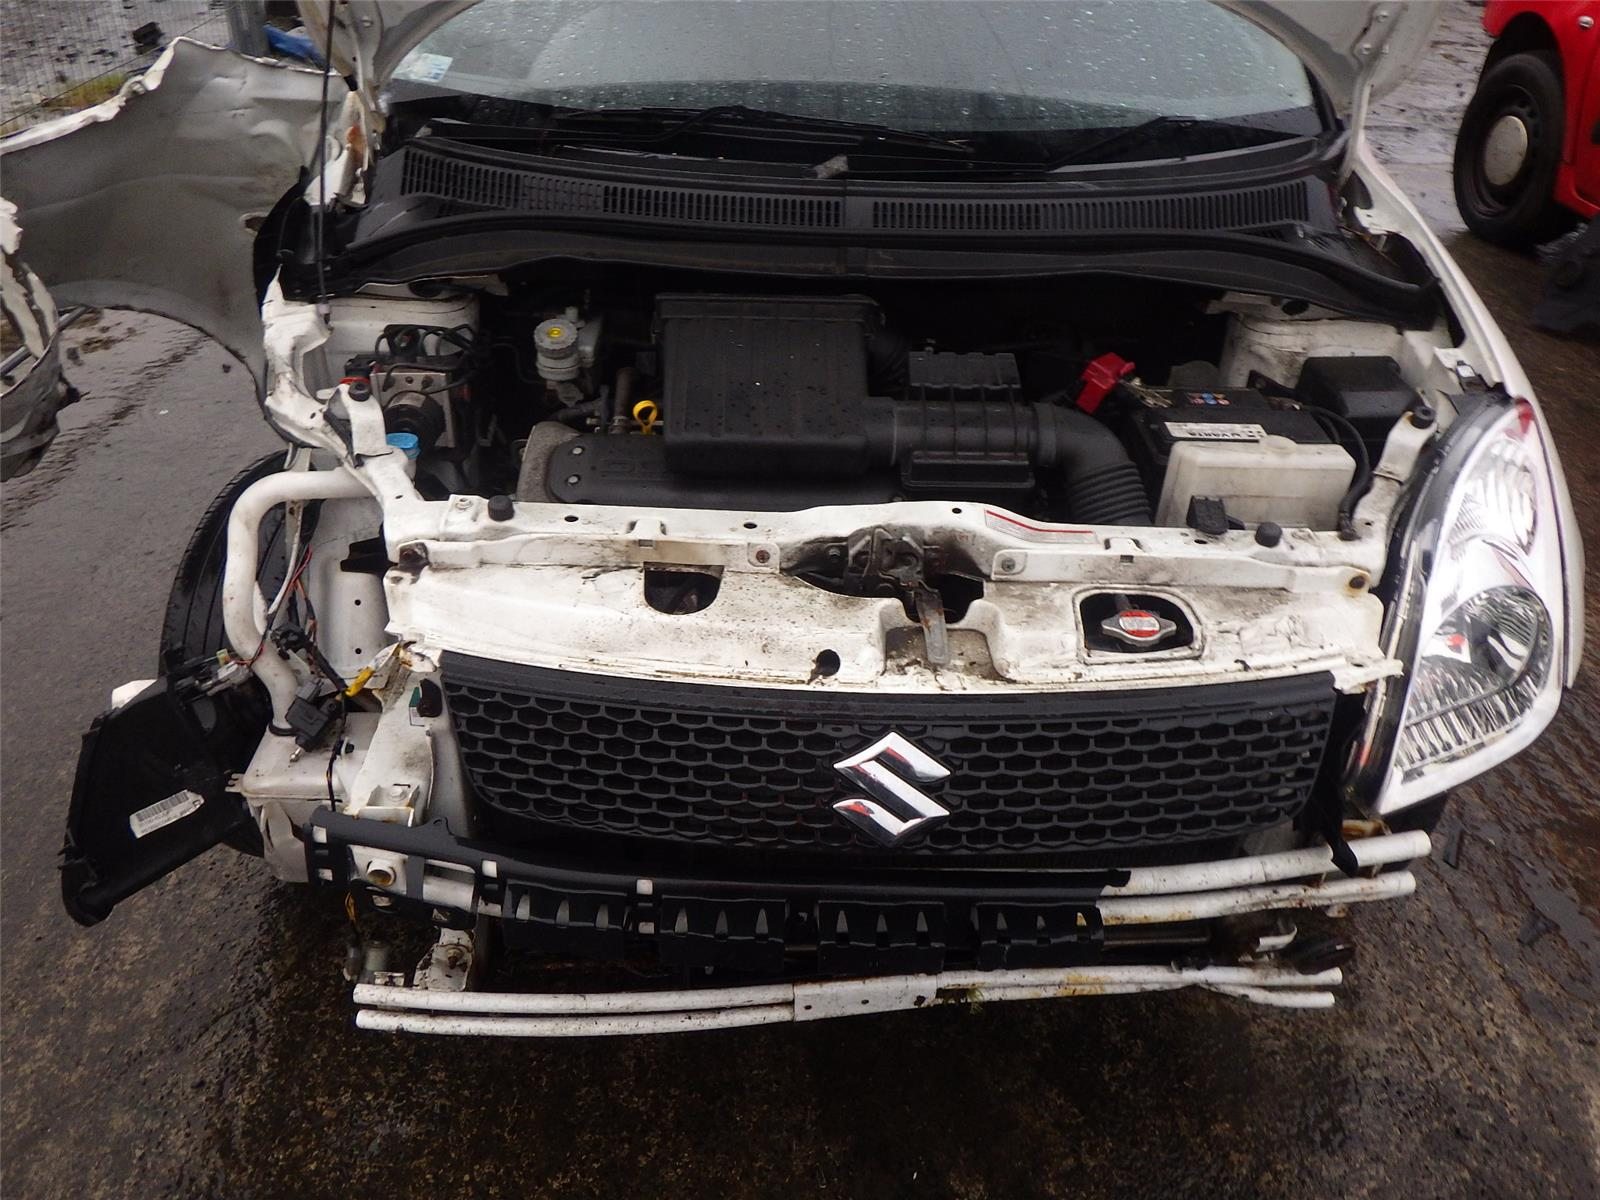 2009 Suzuki Swift GL 3 Door Hatchback (Petrol / Manual) breaking for used  and spare parts from Burnside Motors, Auto Salvage Dealers in Leven, Fife